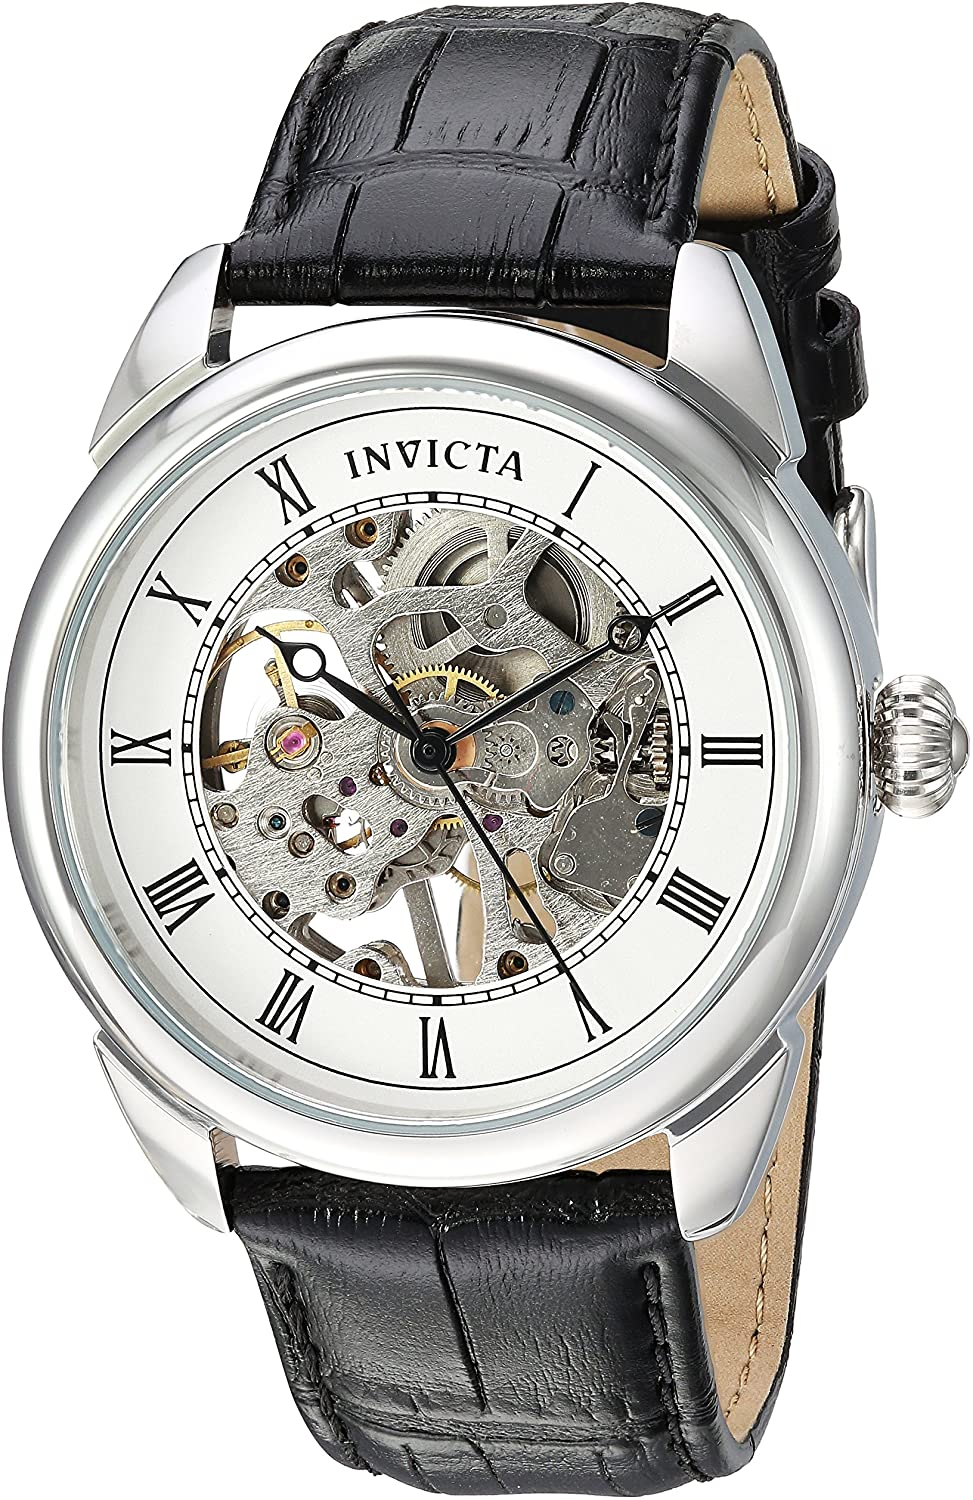 Invicta Men's Specialty 42mm Stainless Steel and Leather Mechanical Watch,  Black (Model: 23533) | Lazada PH